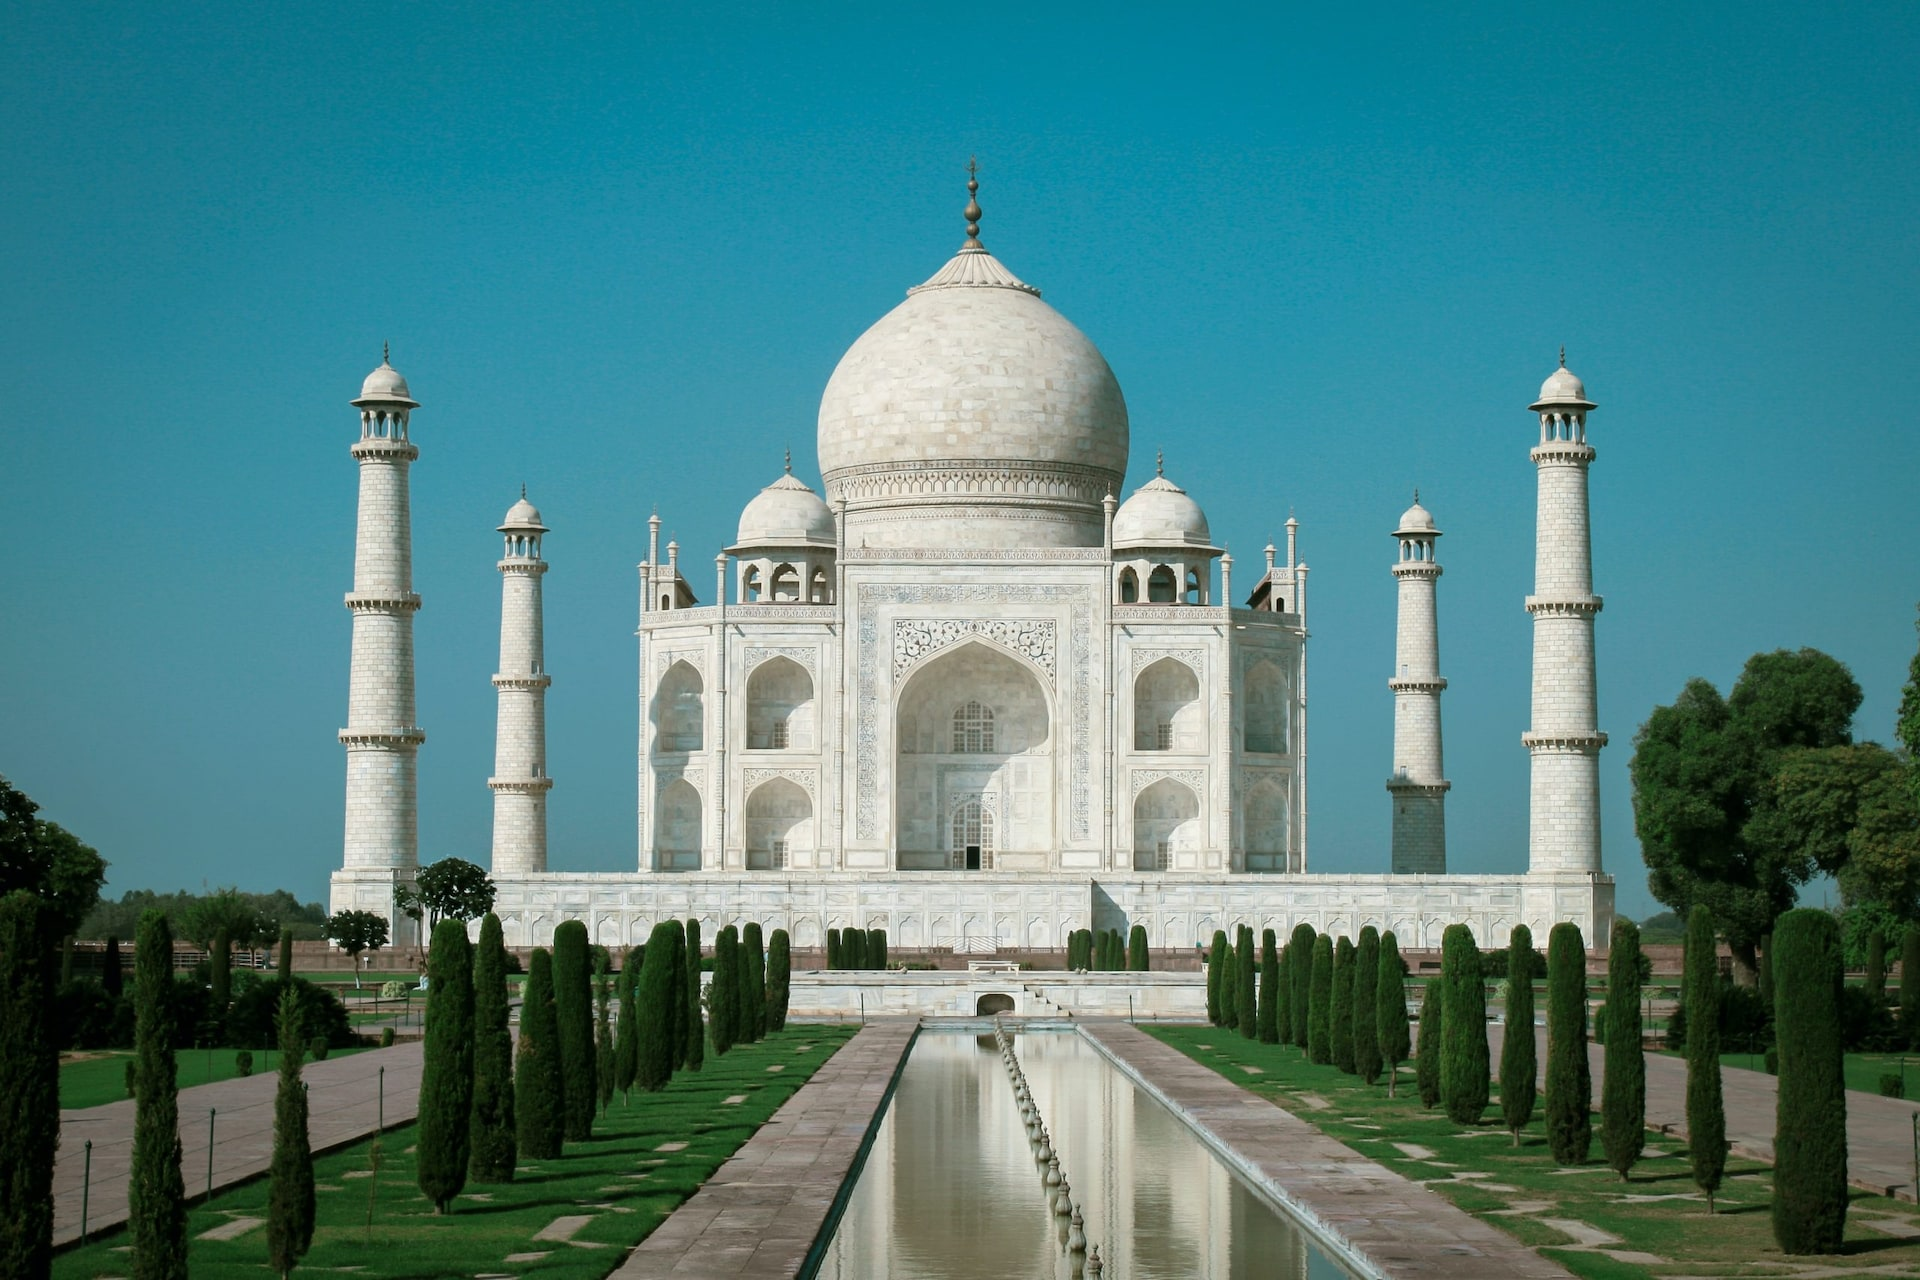 Who Is The Architect Of The Architectural Wonder Taj Mahal